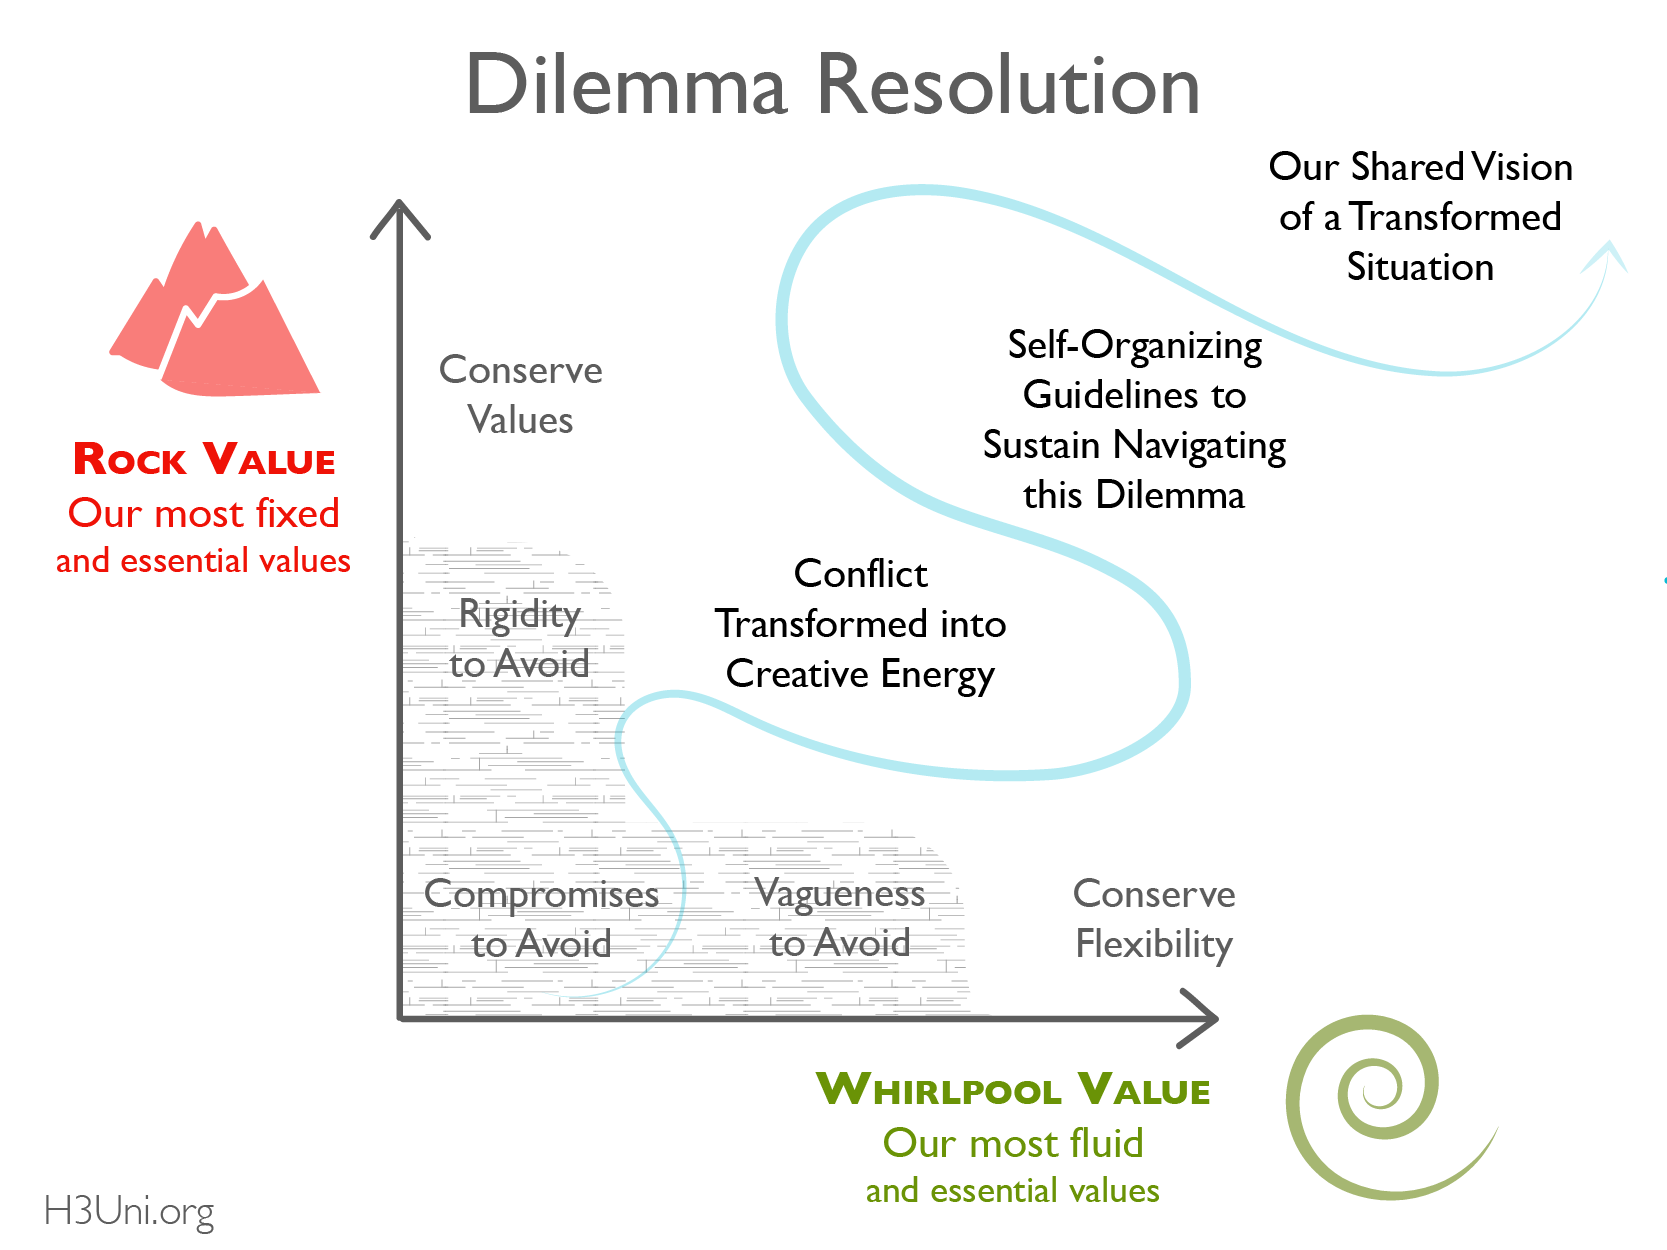 Dilemma Resolution